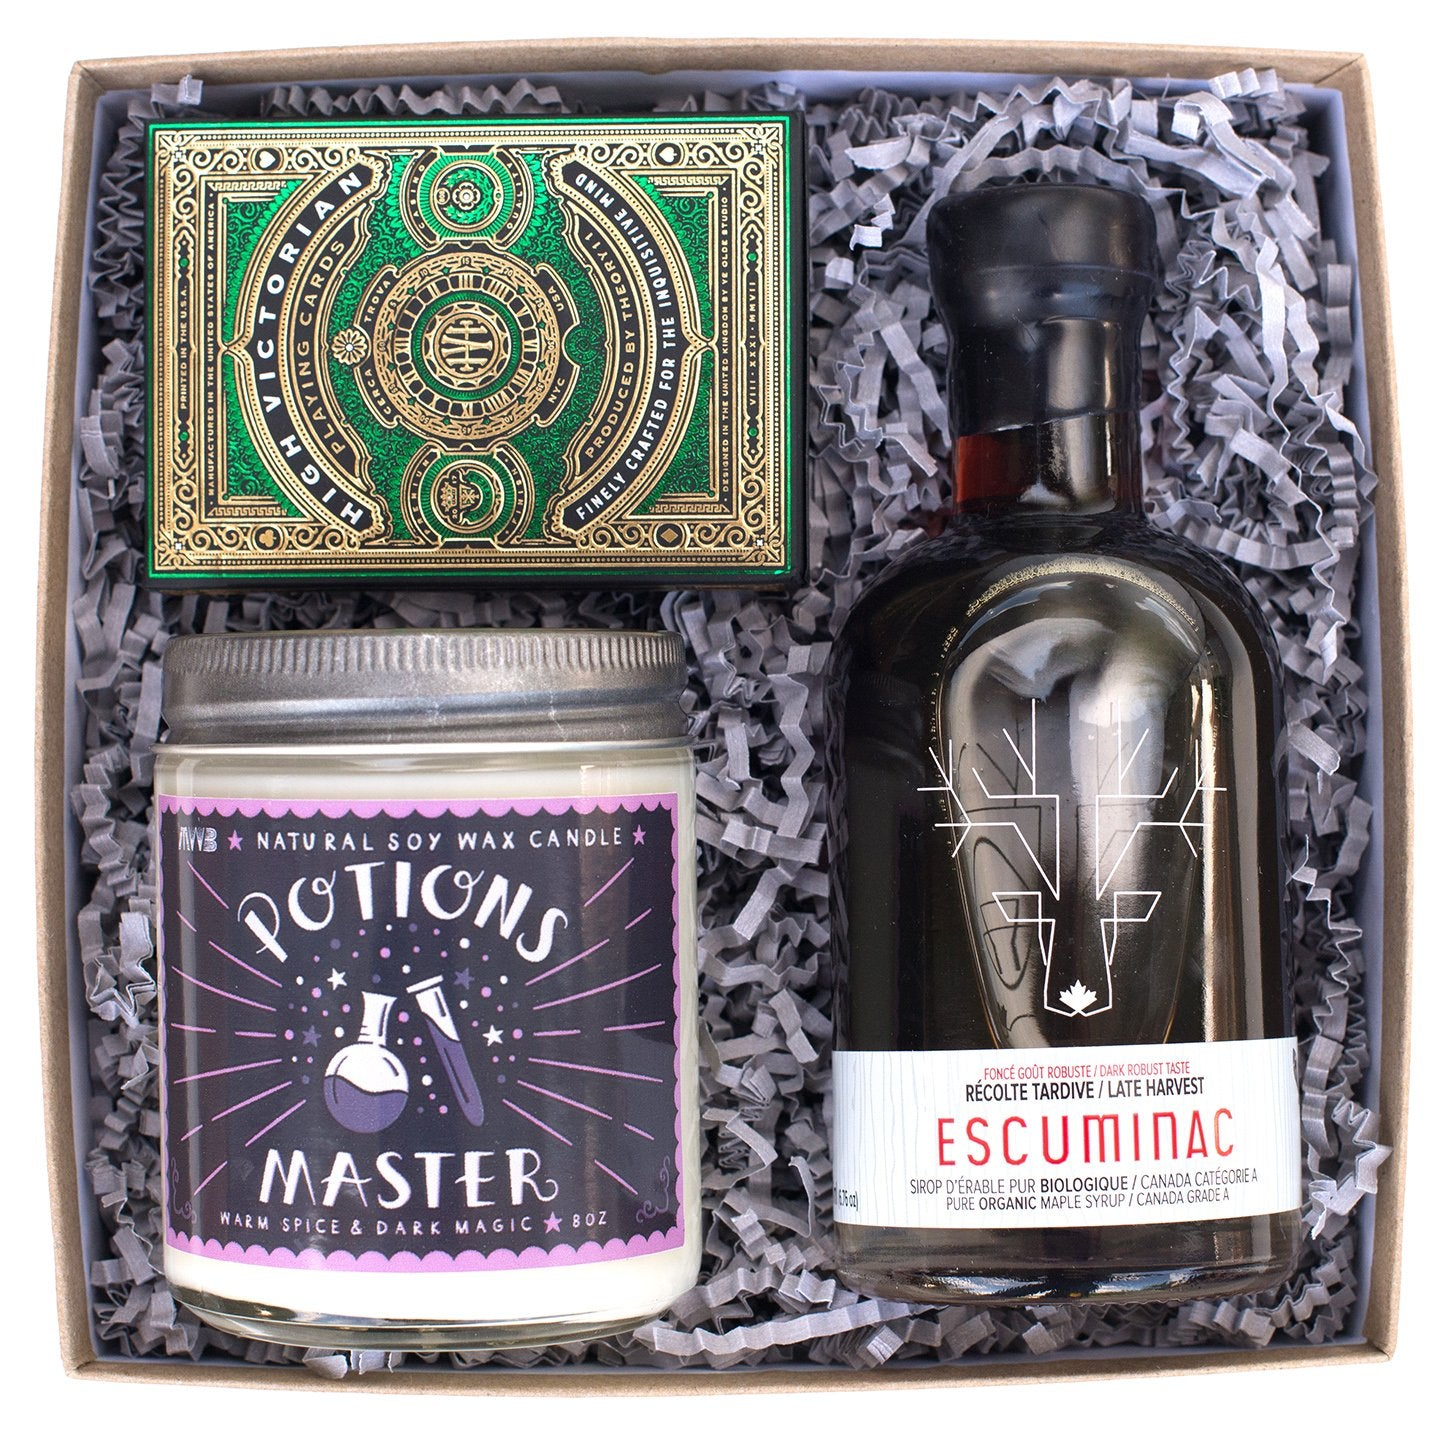 Potions master gift box my weekend is booked client gift ideas gift for drink lover